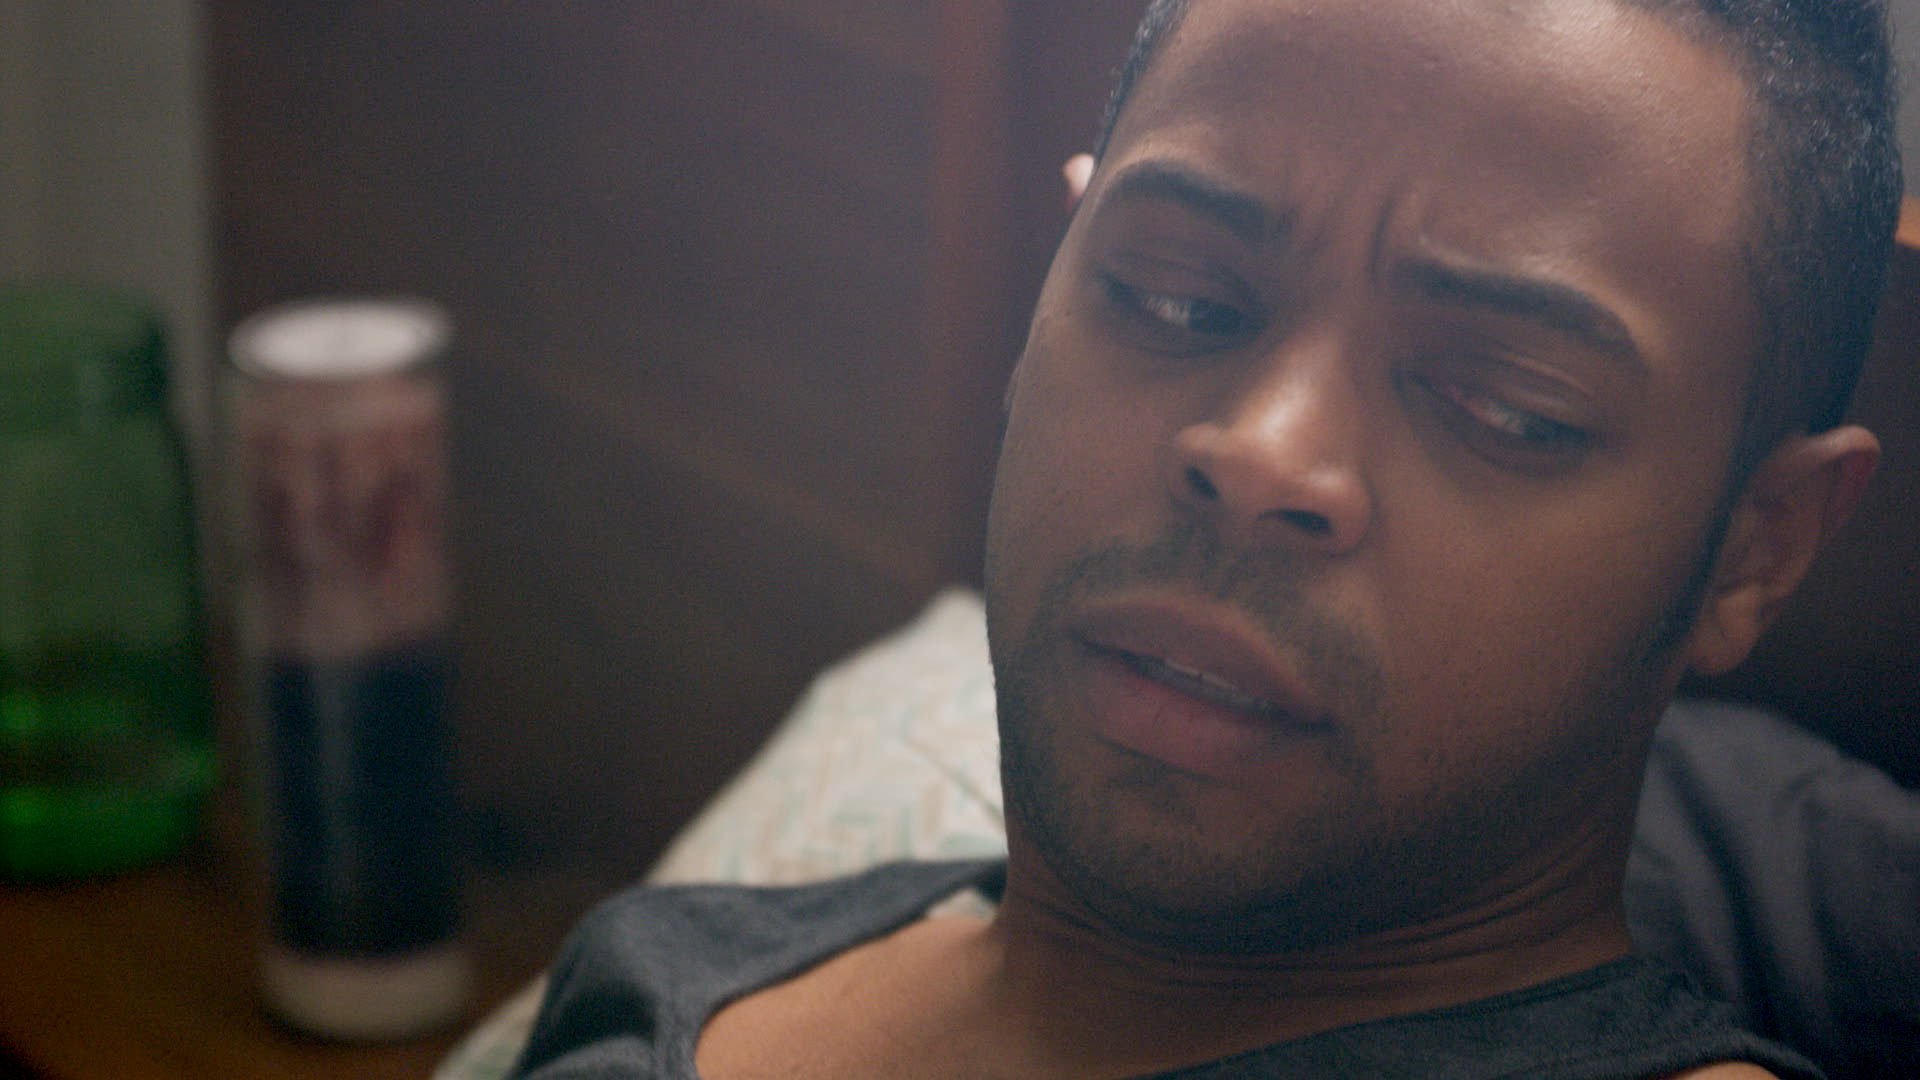 Antoine Perry . Co-star of  Waking Up with Strangers.